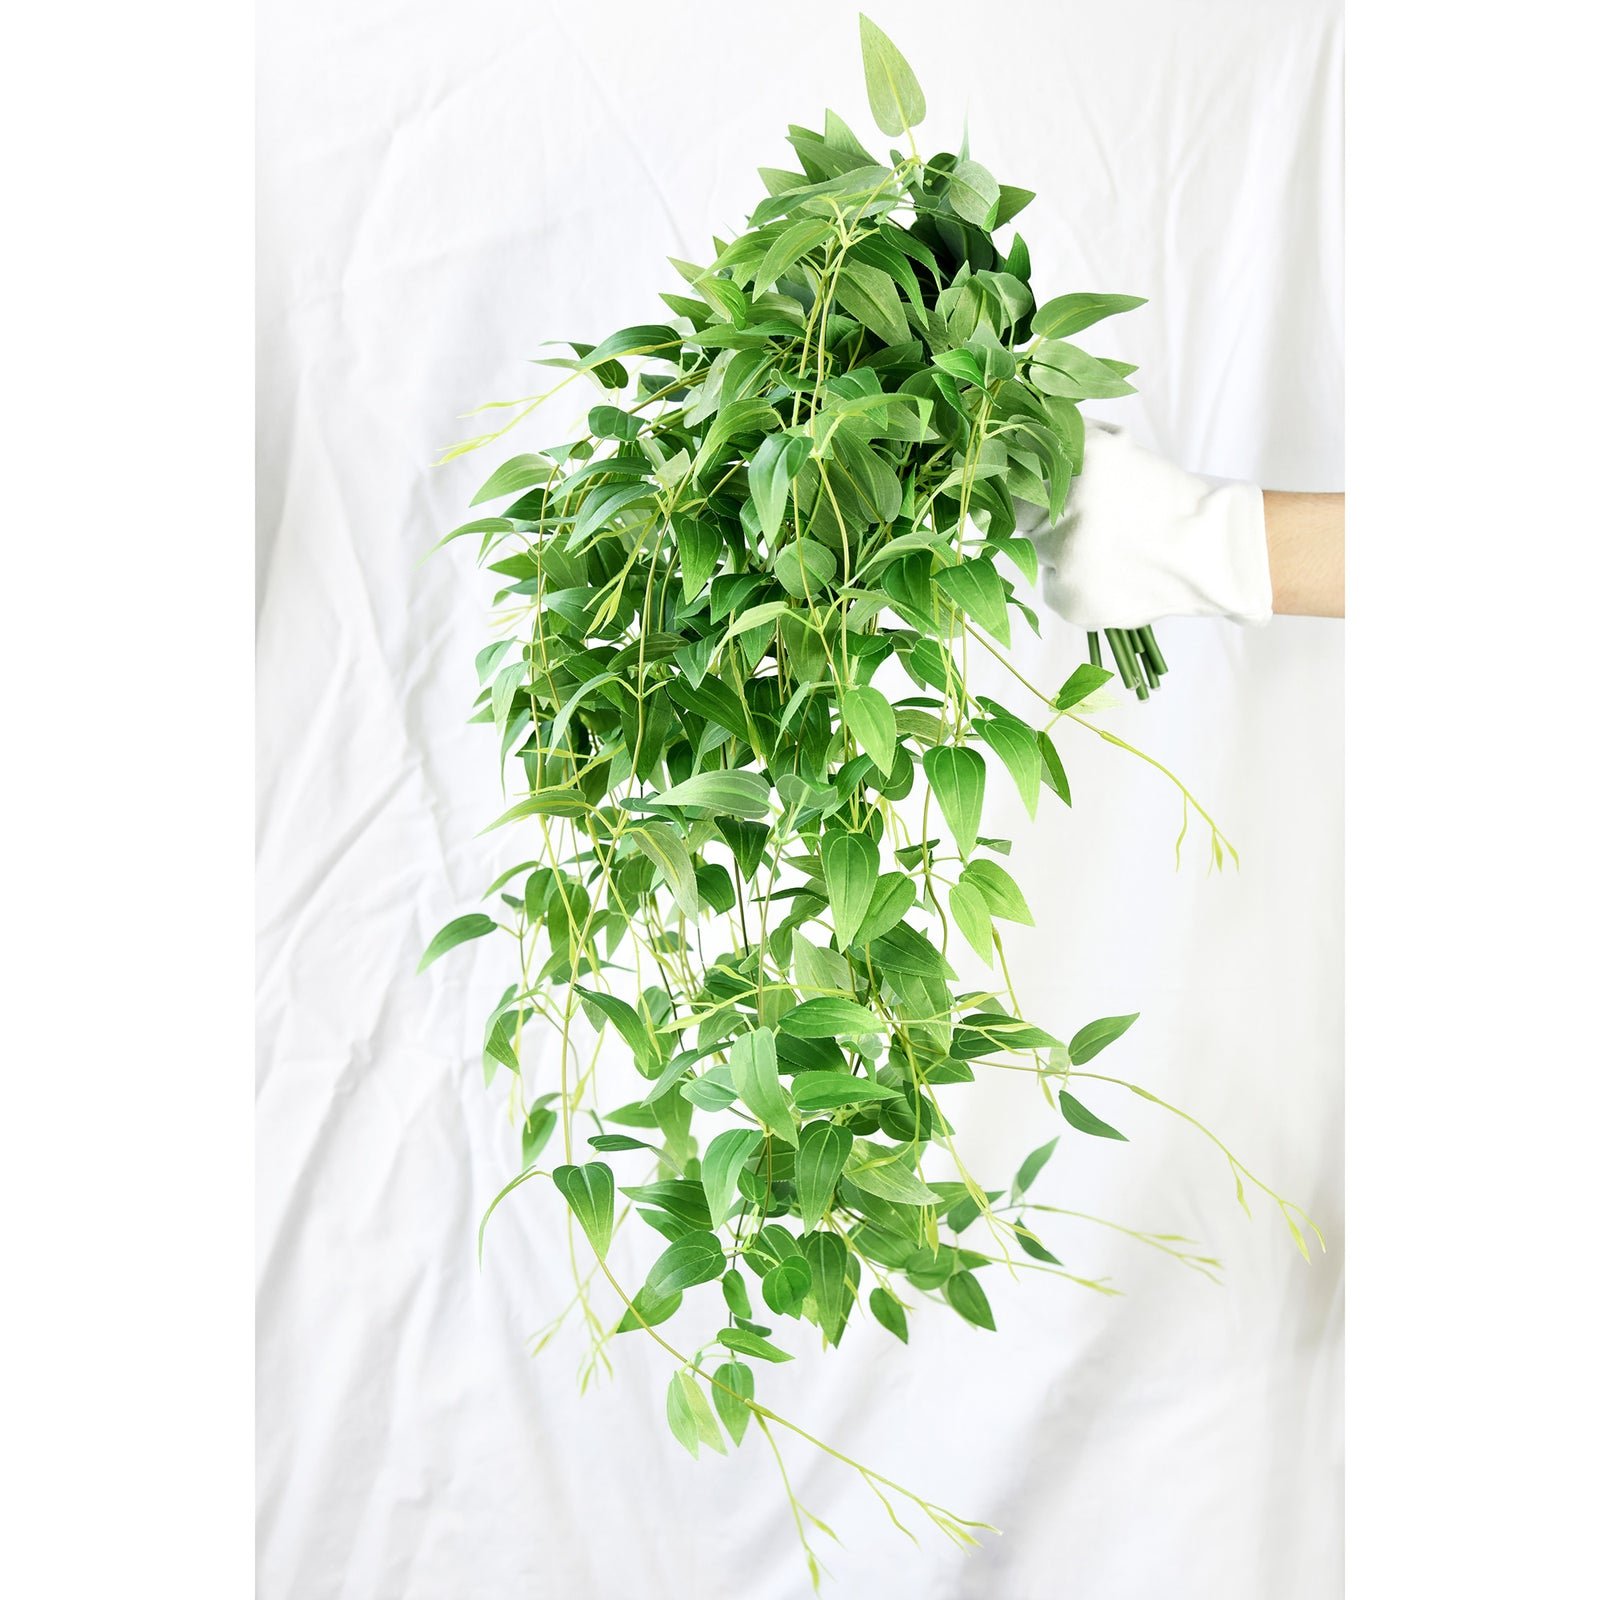 FiveSeasonStuff 10 Hanging Vine Leaf Foliage Plants Artificial Clematis Silk Garland Leaves | for Indoor Outdoor Wedding Decoration DIY Home Wall (86cm length each vine)